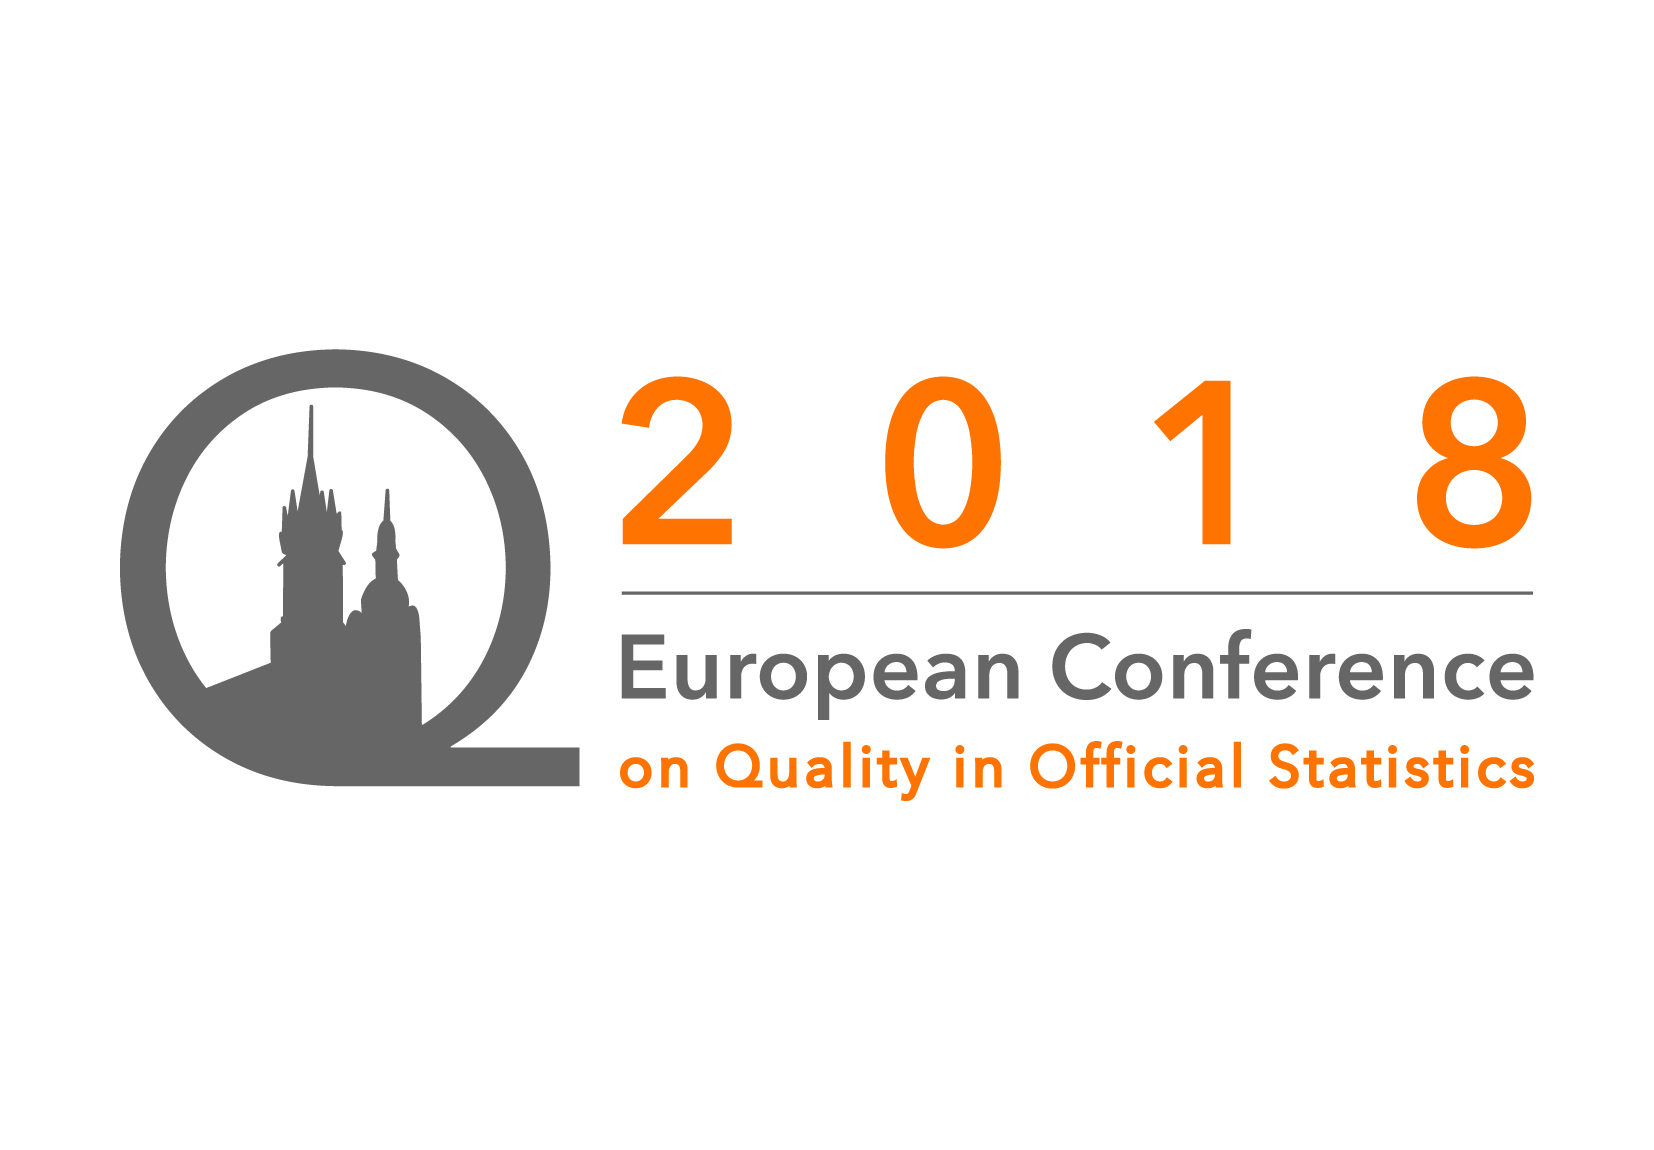 Baner konferencji Q2019 European Conferencje on qualisty in official statistics.